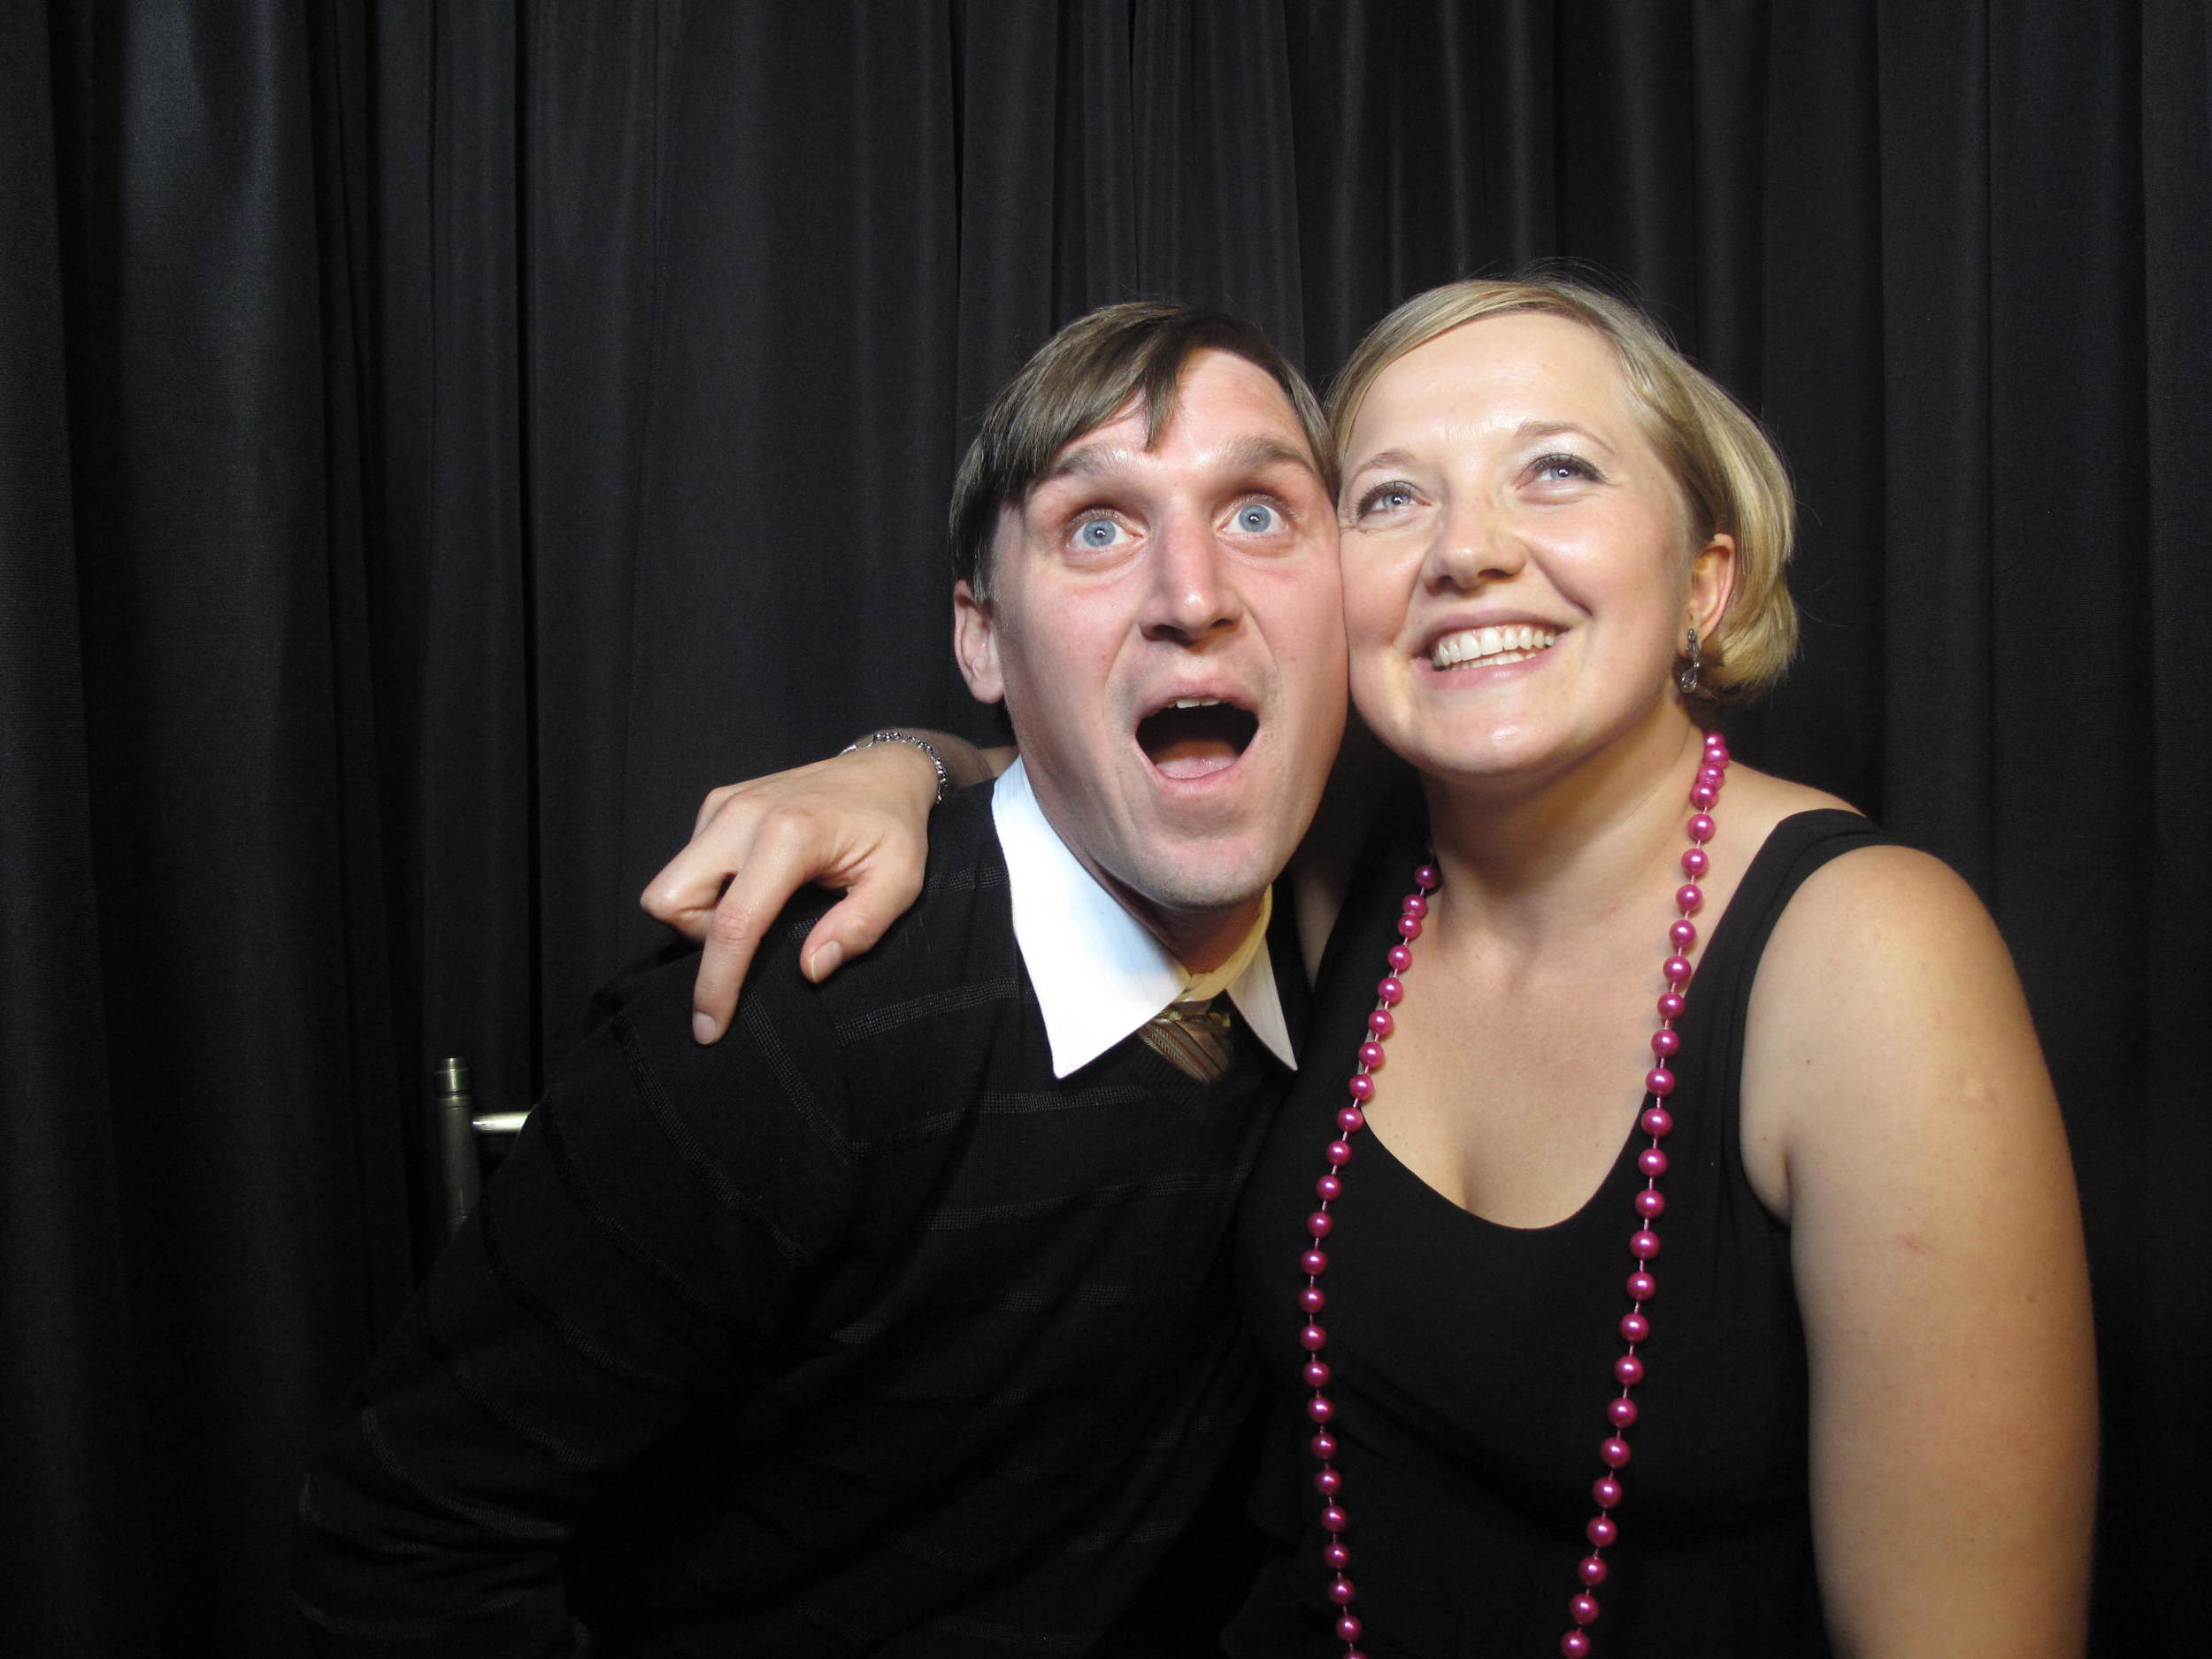 Snapshot Photobooths at Southgate Manor in Freehold, New Jersey